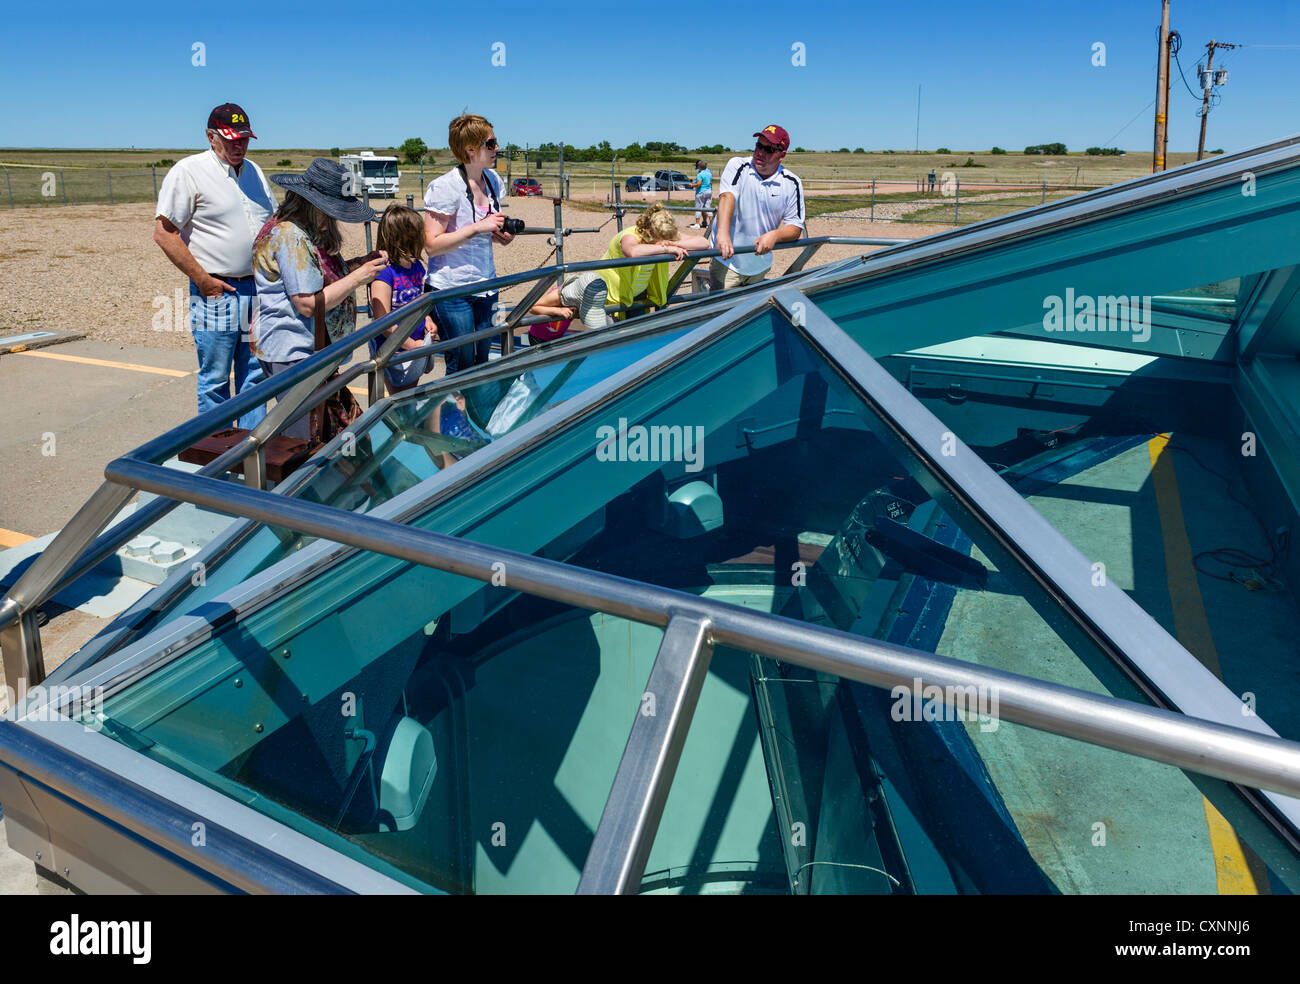 Tourists at the Minuteman II ICBM missile silo at the Minuteman Missile National Historic Site, near Wall, South - Stock Image